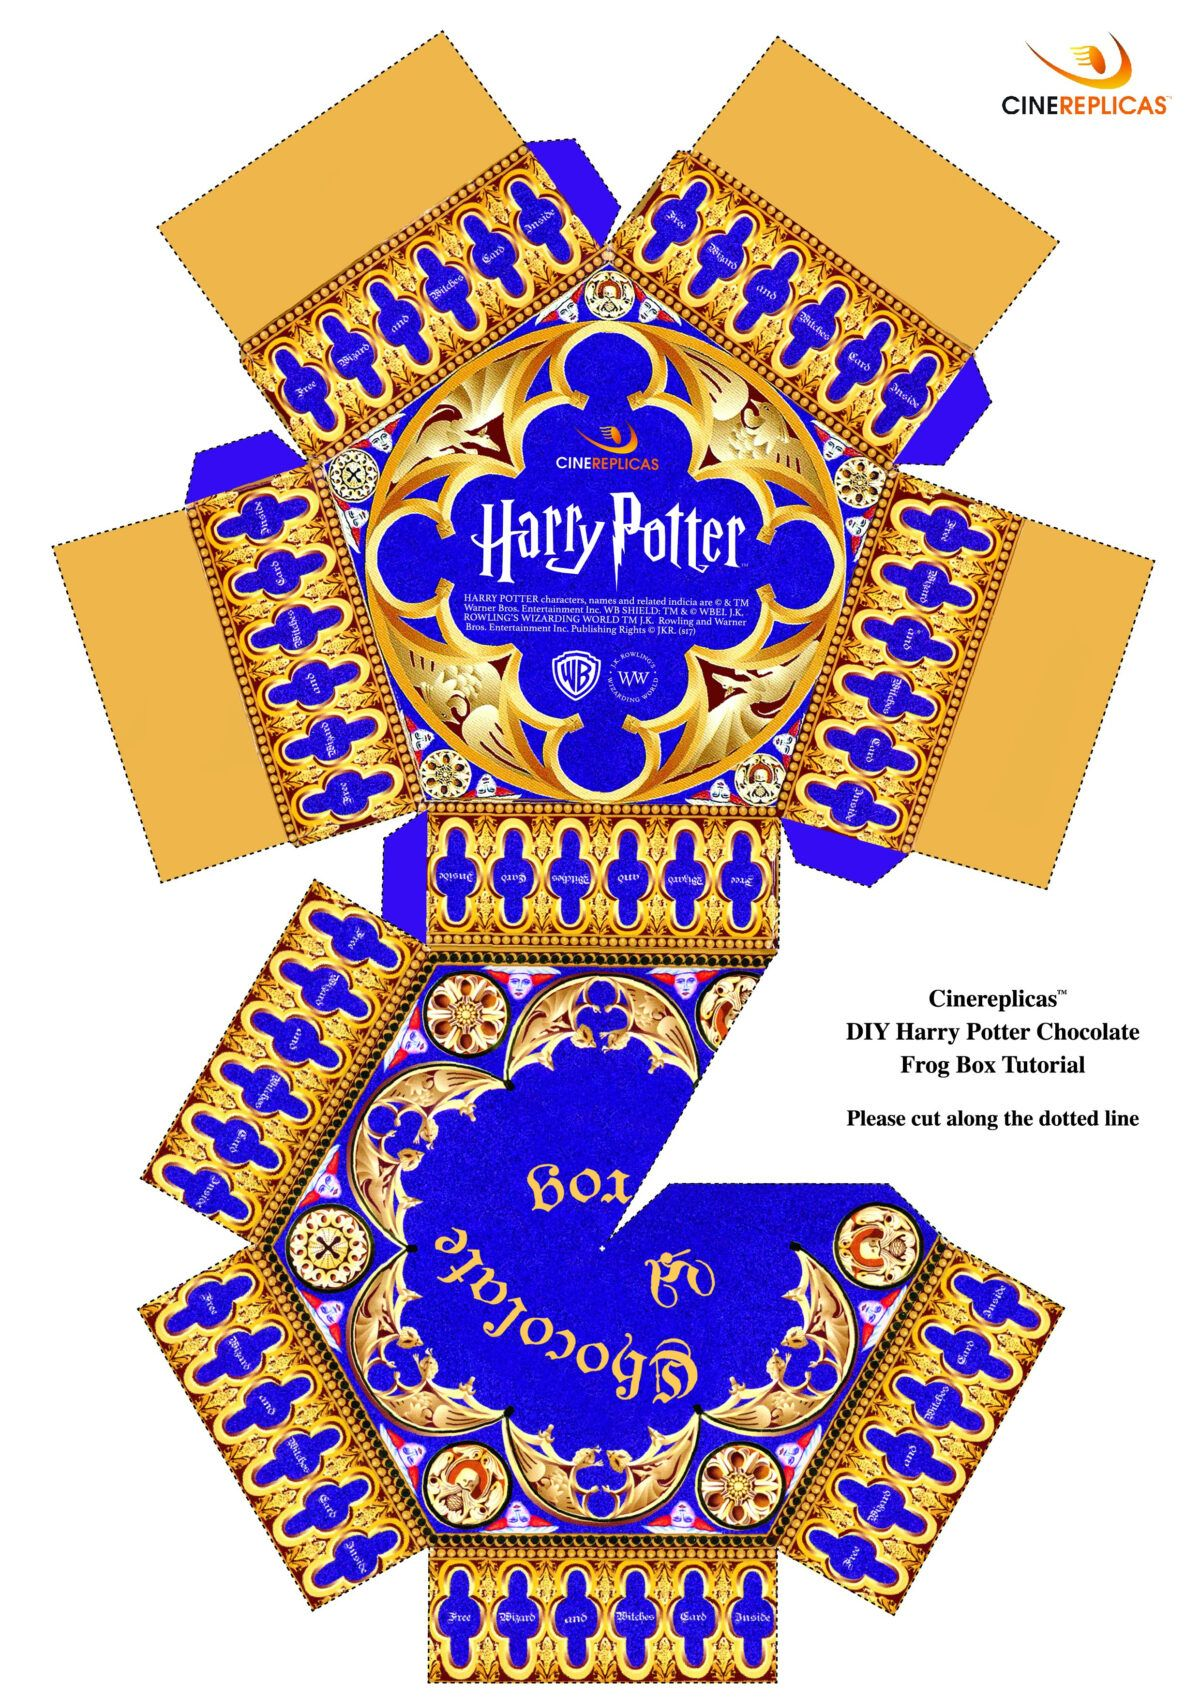 D8874 Chocolate Frog Box Template Wiring Resources Within Chocolate Frog Card Te Regalos De Harry Potter Manualidades De Harry Potter Adornos De Harry Potter